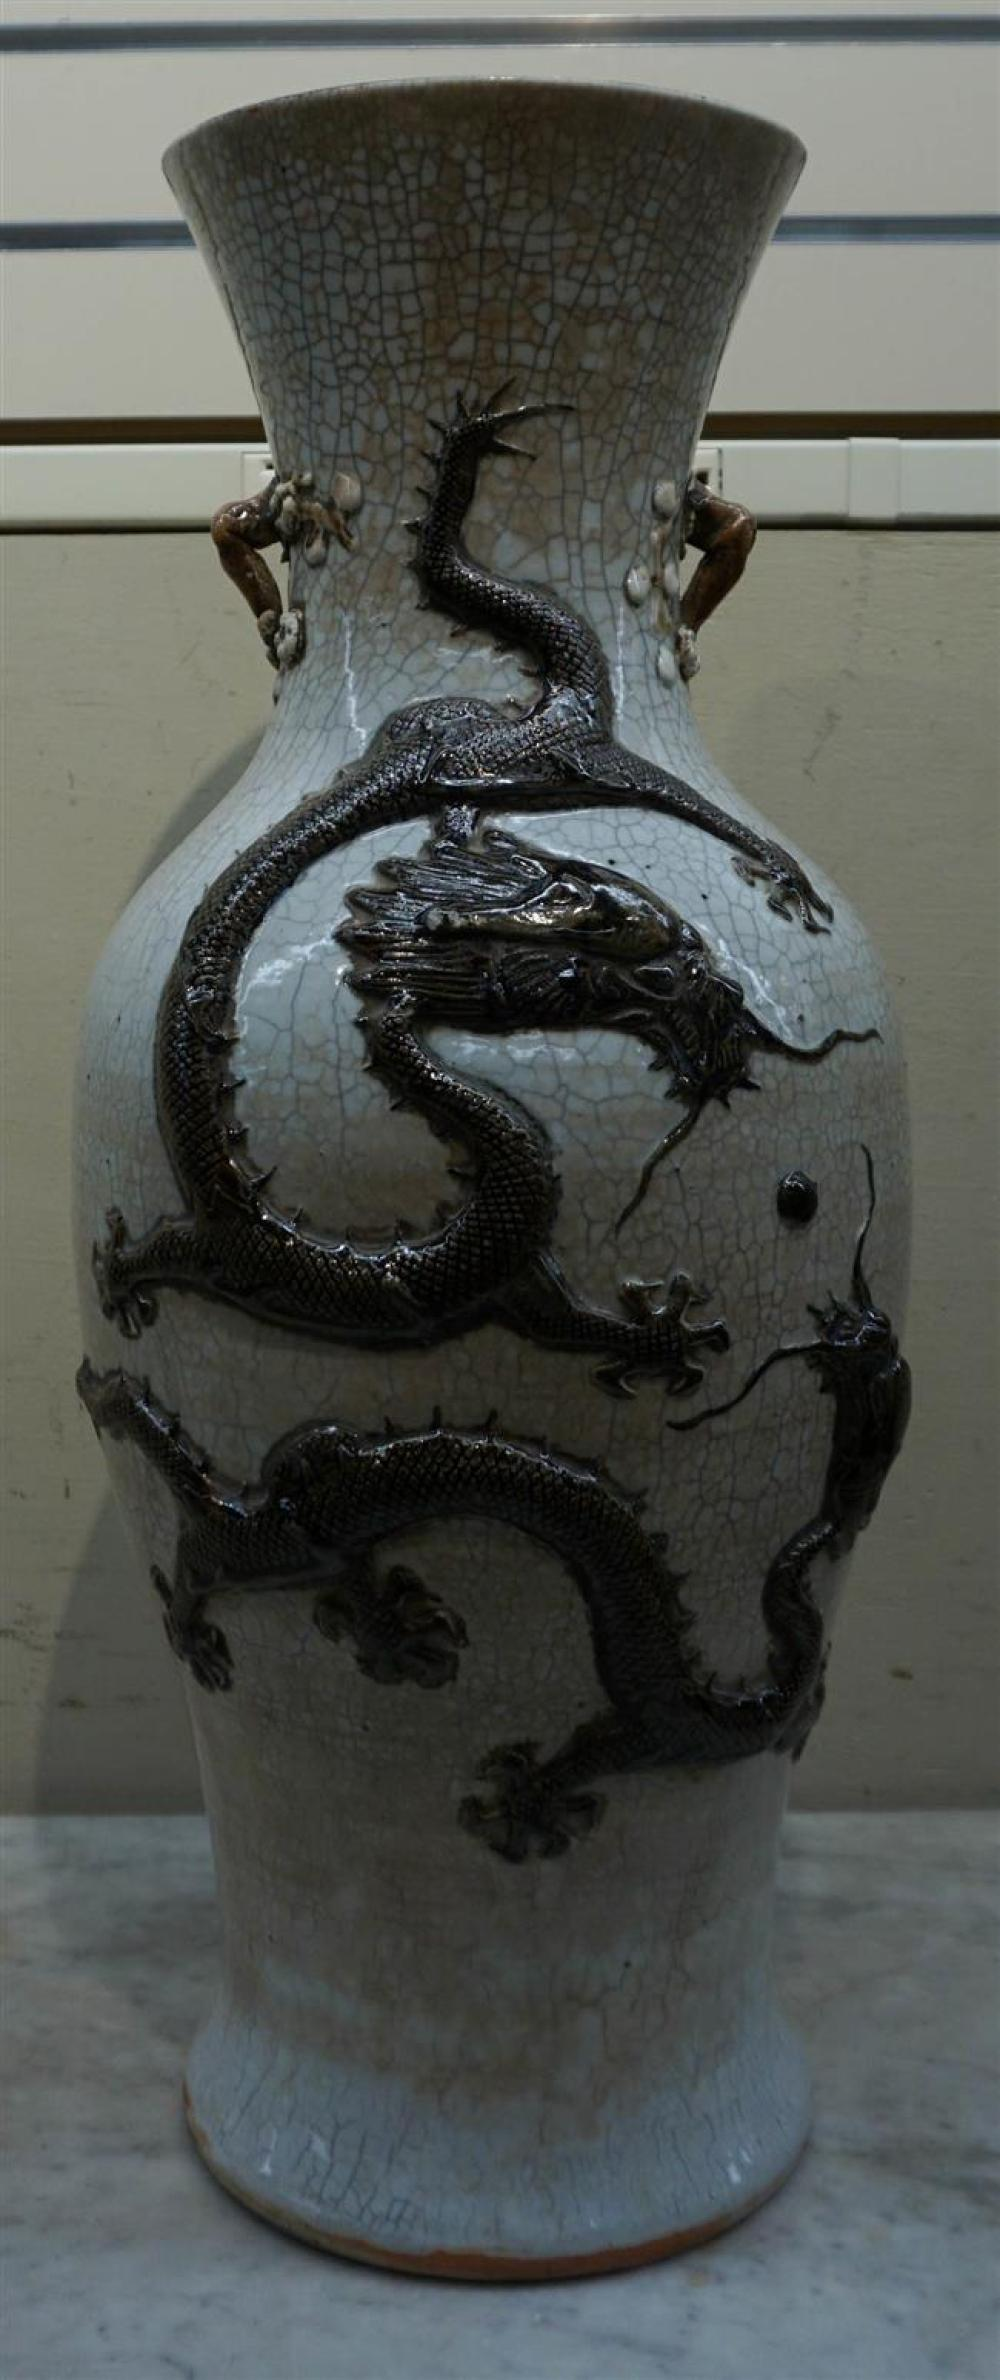 Chinese Crackleware Glazed 'Dragon' Vase, Repaired and Drilled; 23.5 Approximate Height in Inches